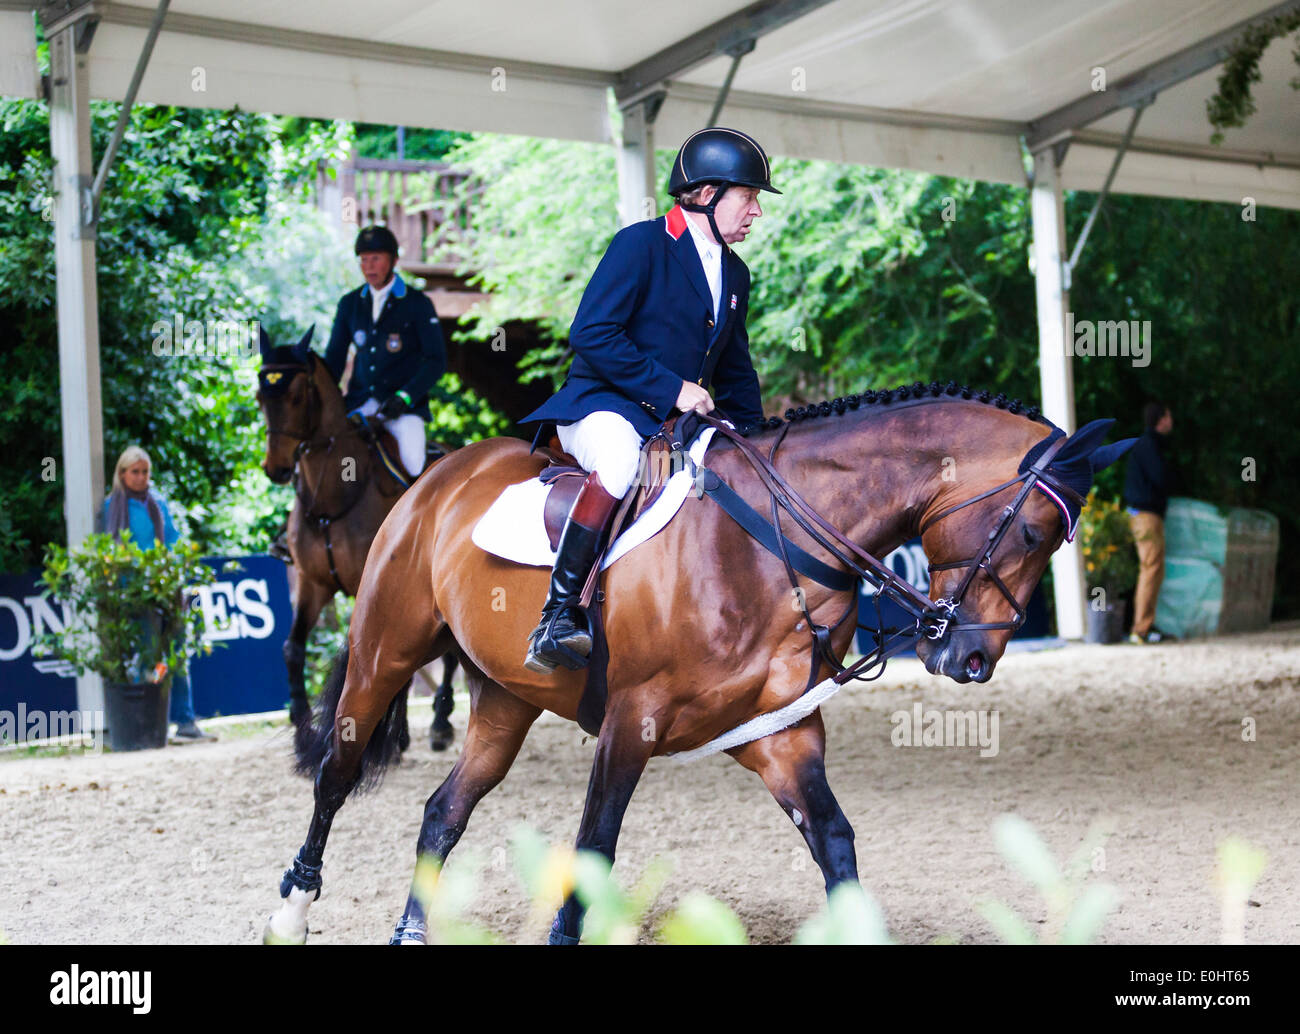 British Olympic equestrian Nick Skelton exercising his horse Big Star in the exercise shed at the Rome show jumping event, 2013. - Stock Image